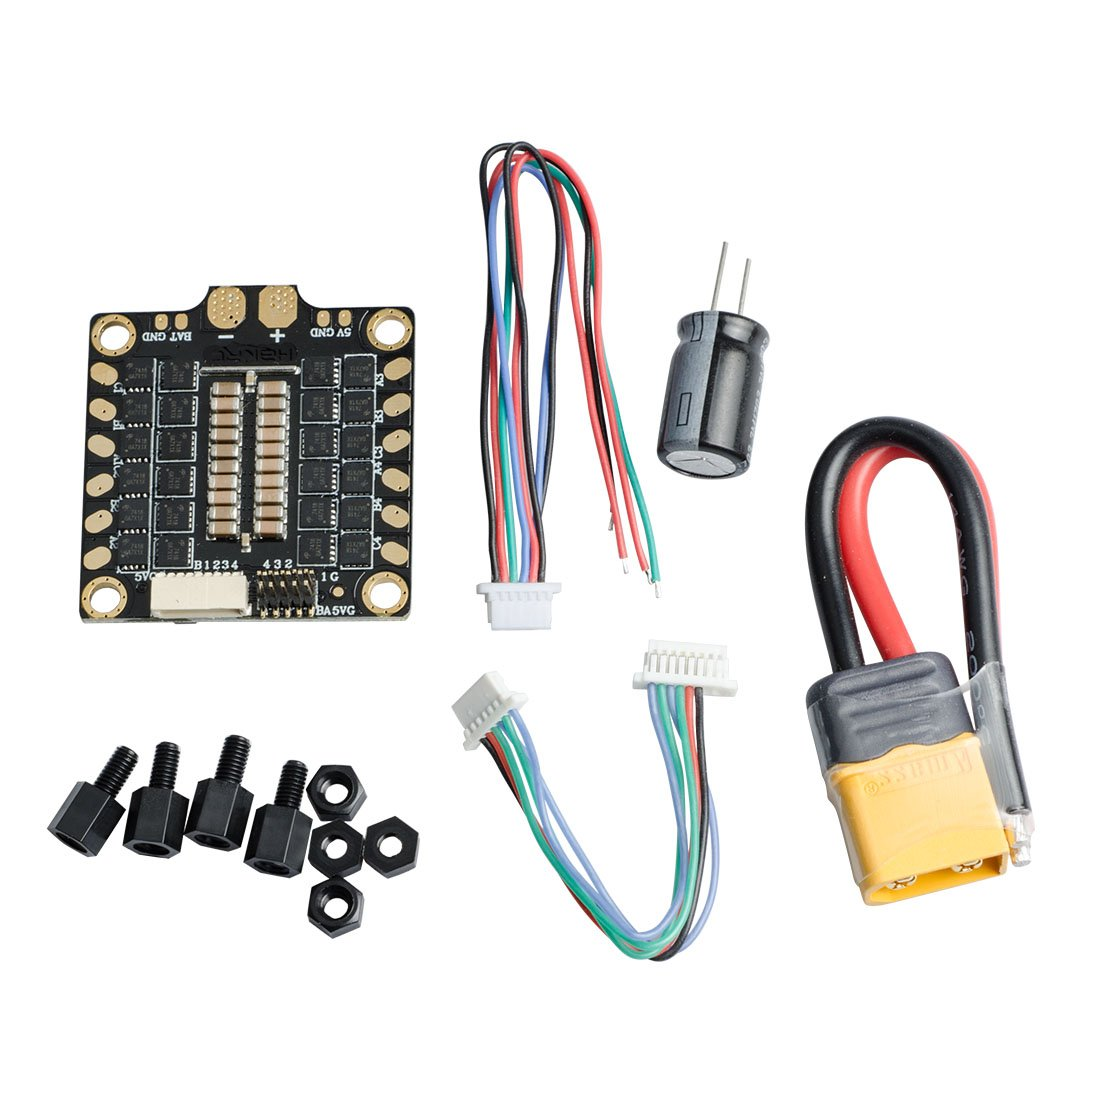 Akk 30a 4 In 1 2 6s Brushless Esc Blheli S Electronic Diy Speed Controller Make Your Own Dshot150 300 600 Capable For Micro Racing Drones Home Improvement